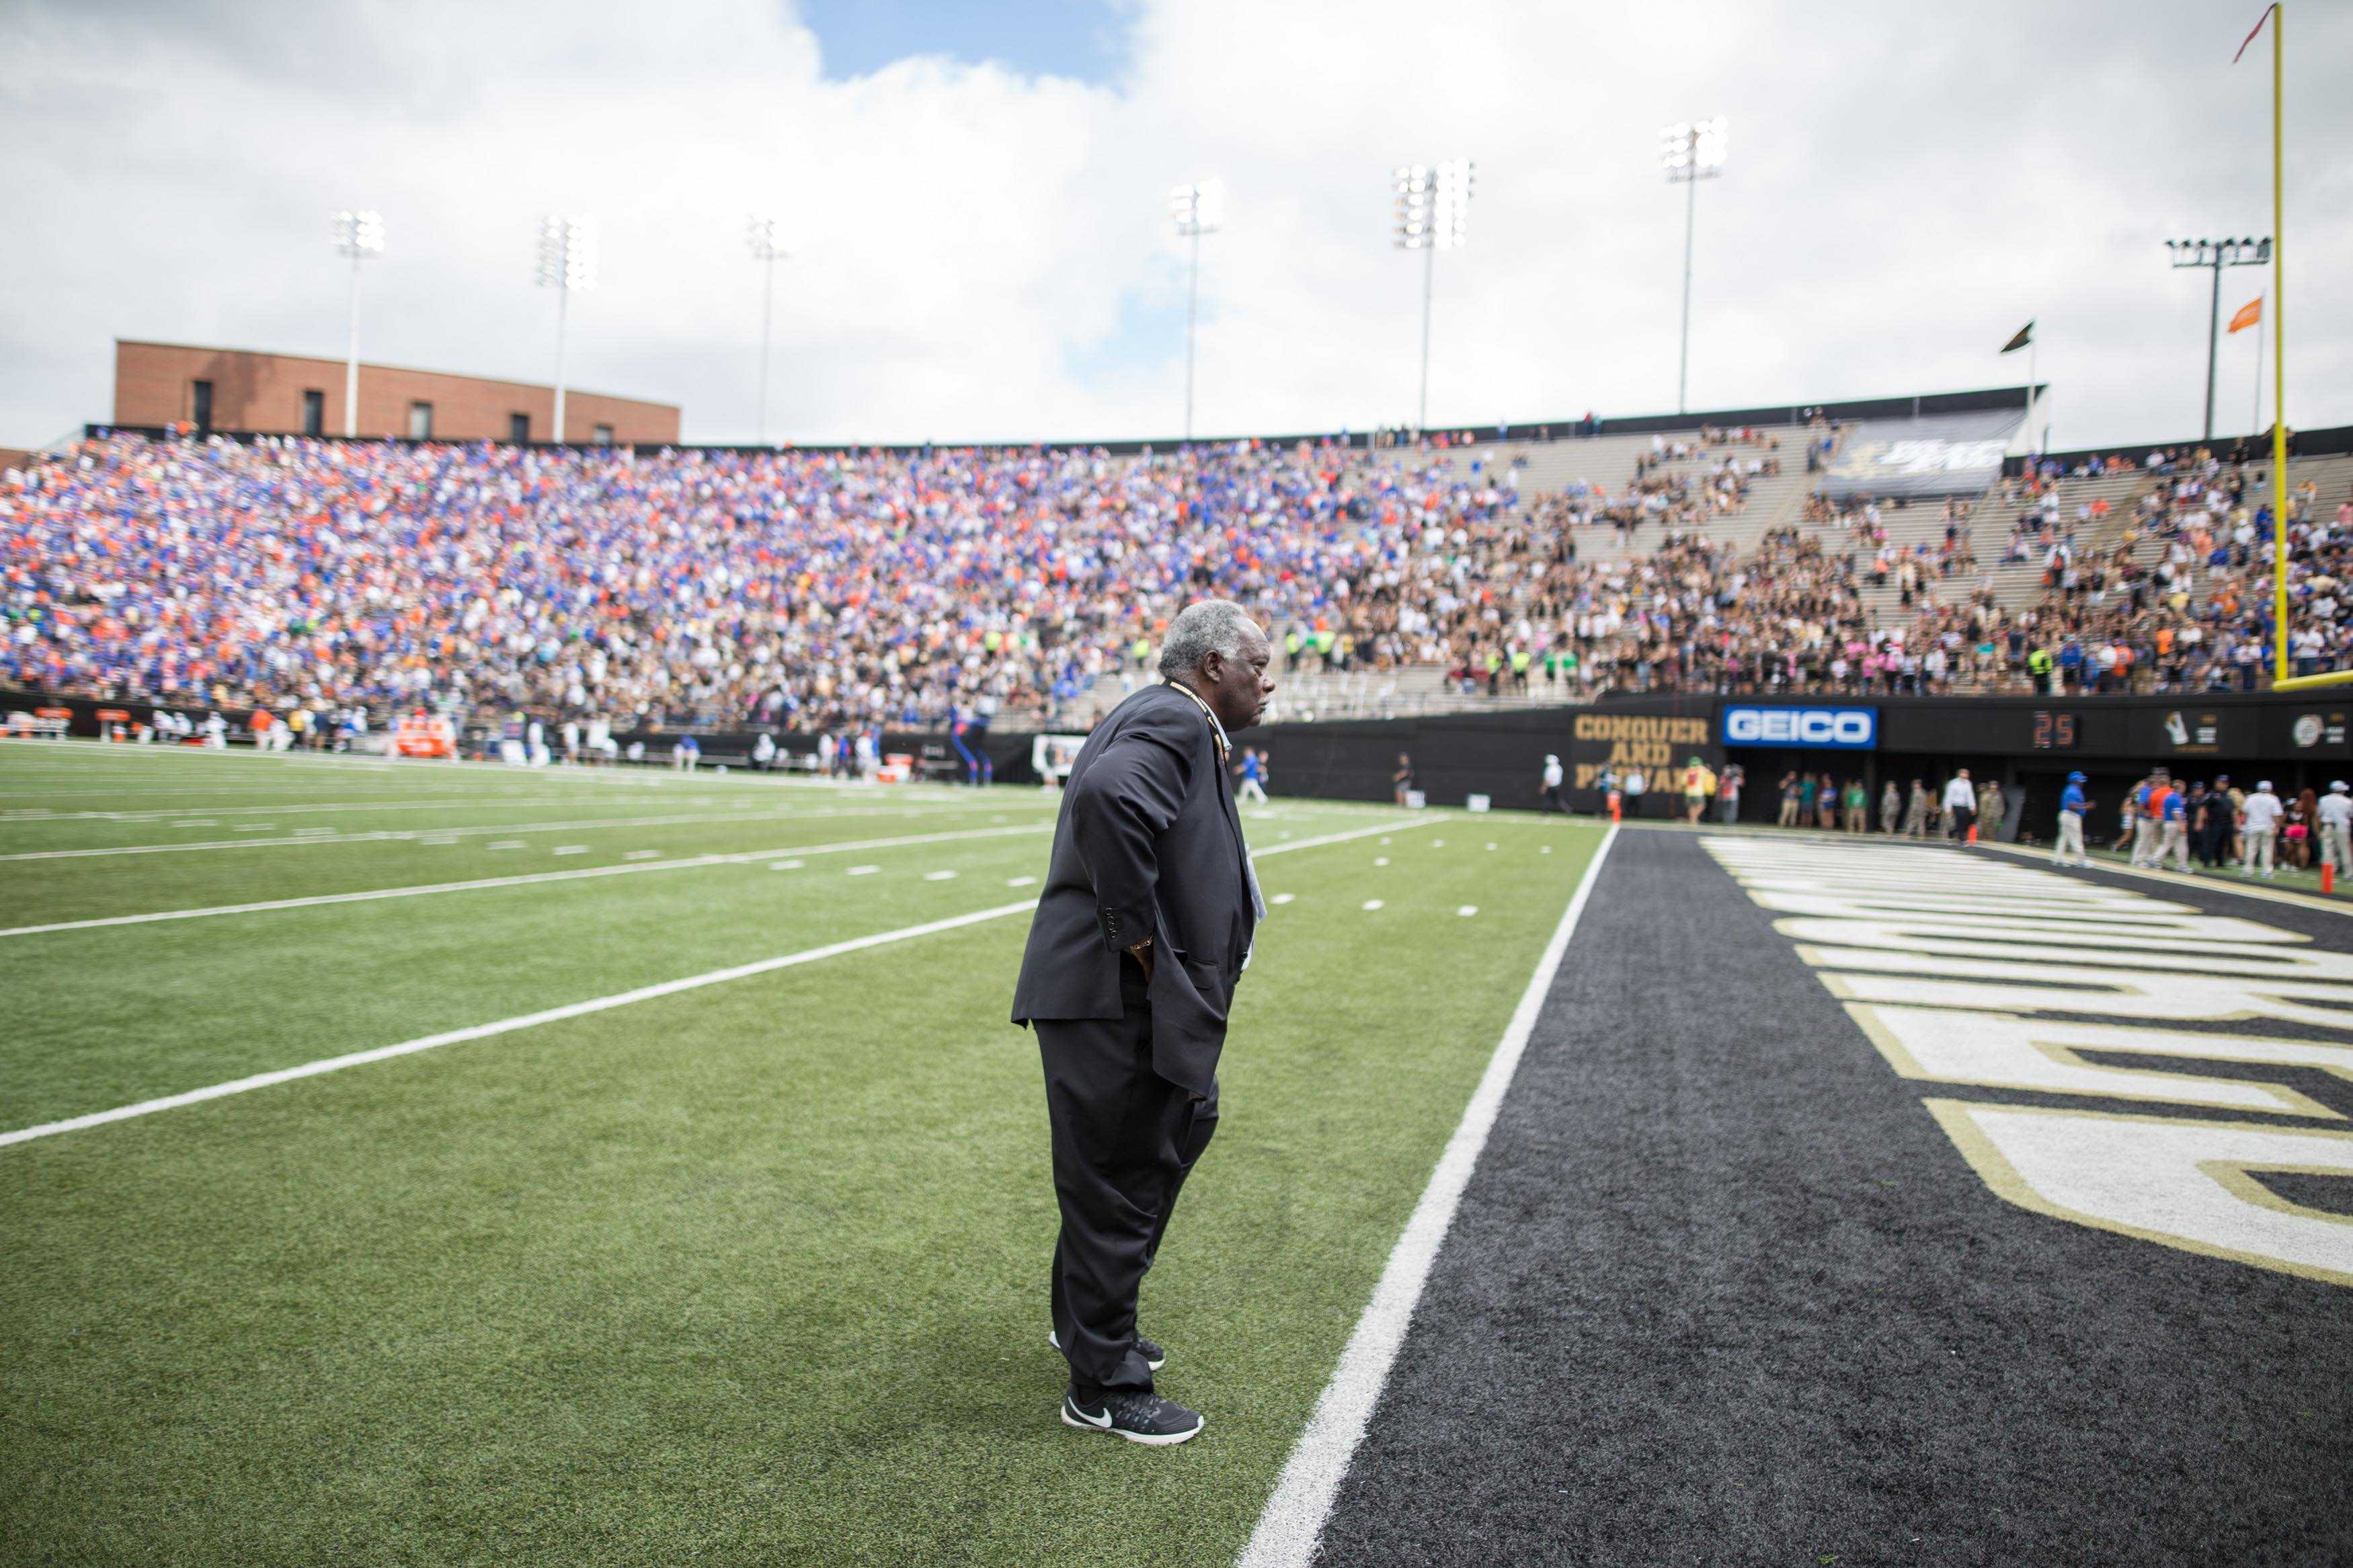 David Williams as the Florida Gators defeated Vanderbilt 13-6 October 1, 2016 at Vanderbilt Stadium. Photo by Ziyi Liu.